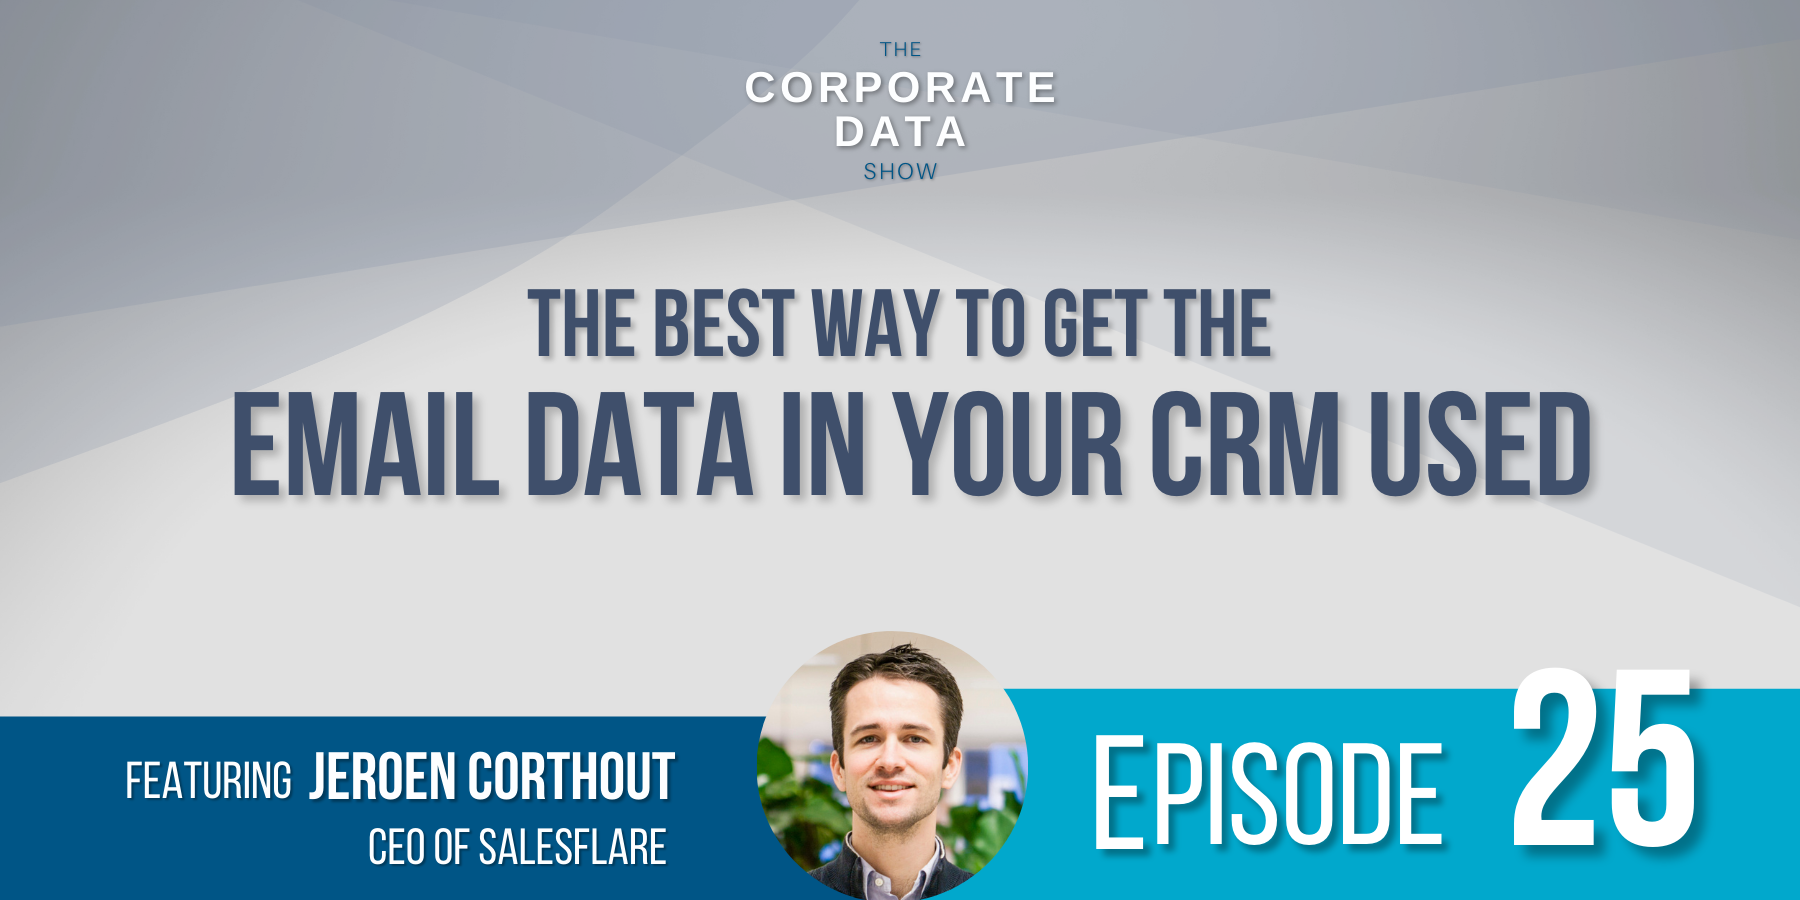 The bet way to get the email data in your CRM used